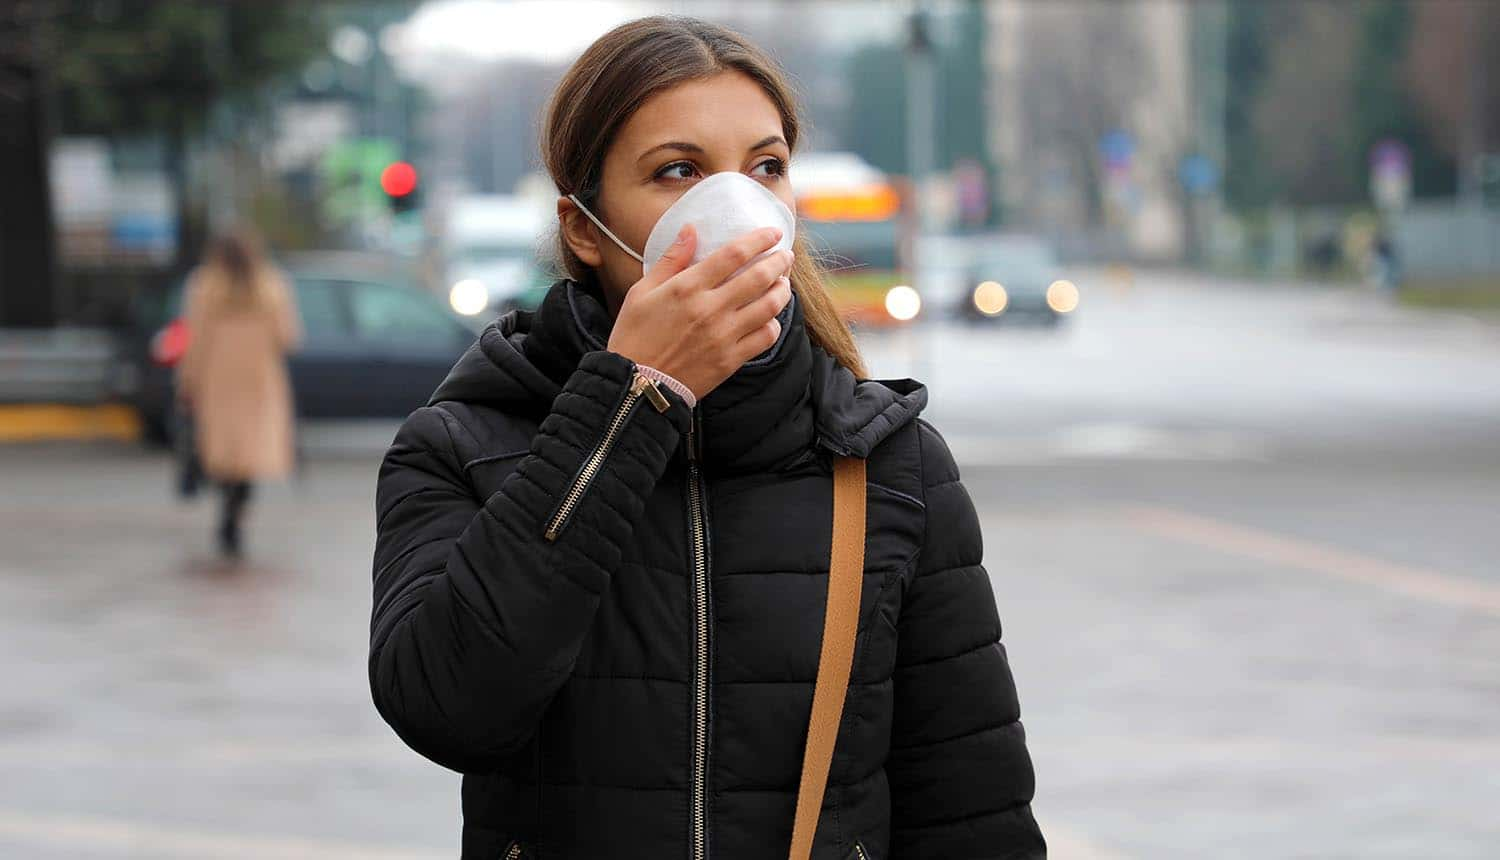 Woman in city street wearing face mask protective for COVID-19 showing trends for new normal